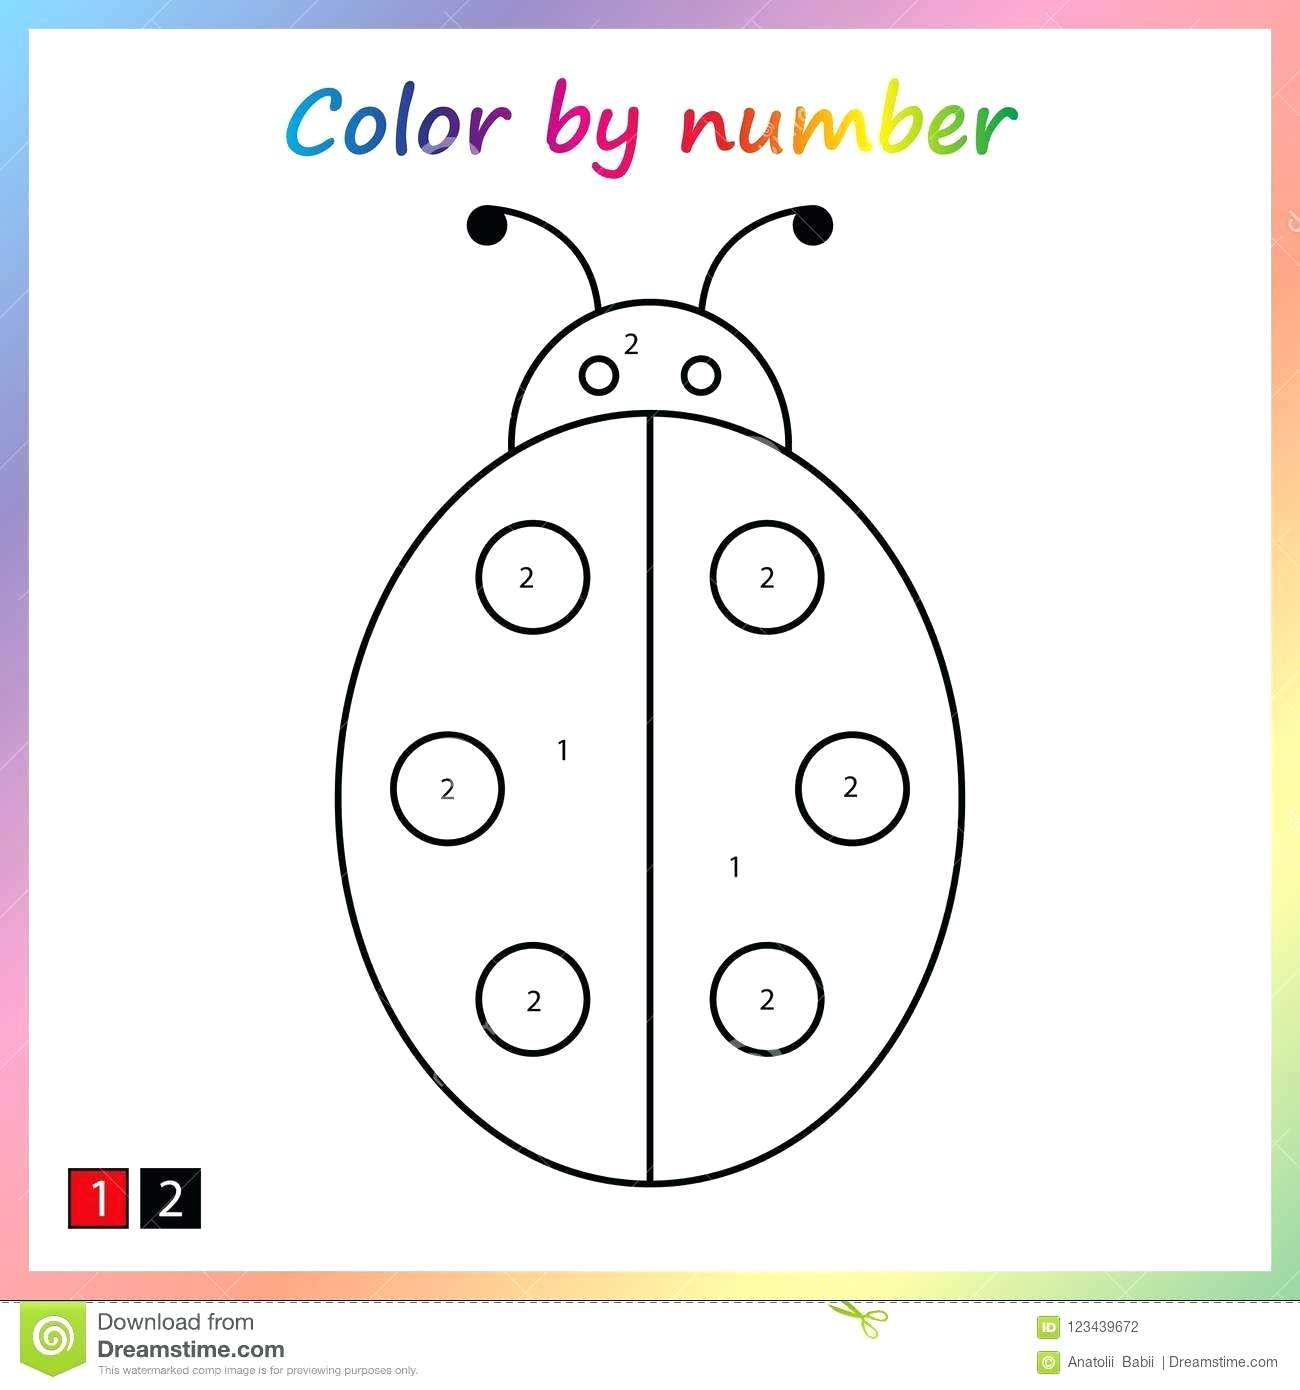 Arthropod Coloring Worksheet Answers Printable Worksheets And Activities For Teachers Parents Tutors And Homeschool Families